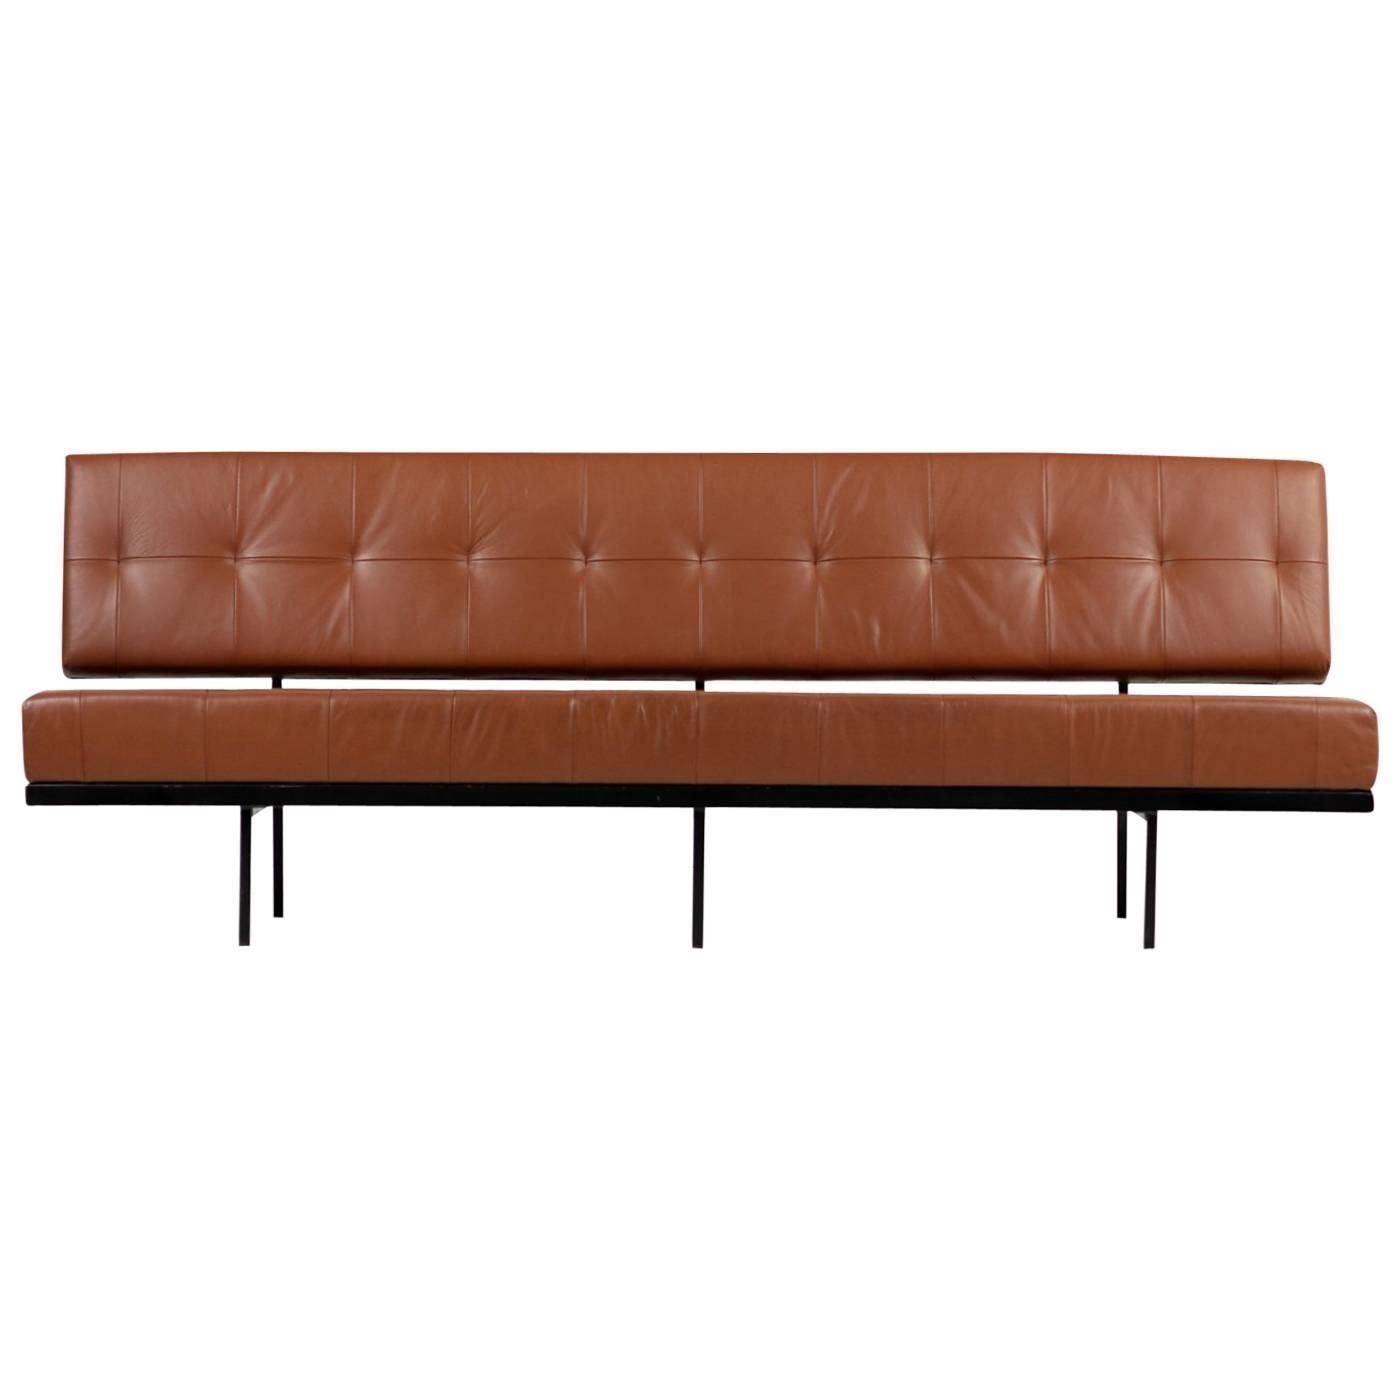 Florence Knoll Sofas – 54 For Sale At 1Stdibs Throughout Florence Knoll Wood Legs Sofas (View 5 of 20)